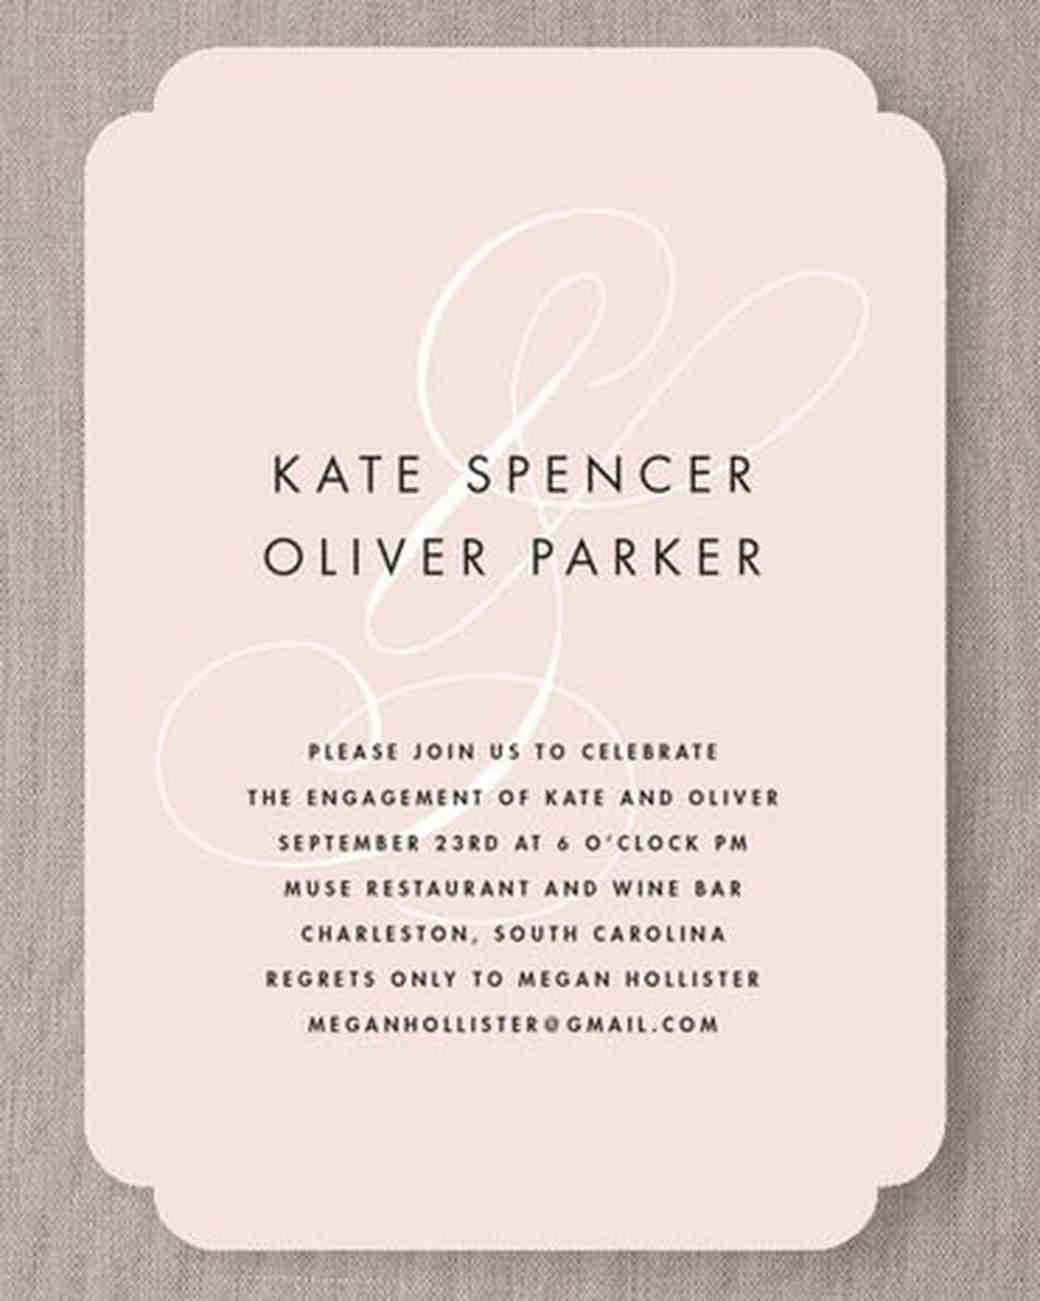 Engagement party invitations gangcraft engagement party invitations martha stewart weddings party invitations stopboris Image collections